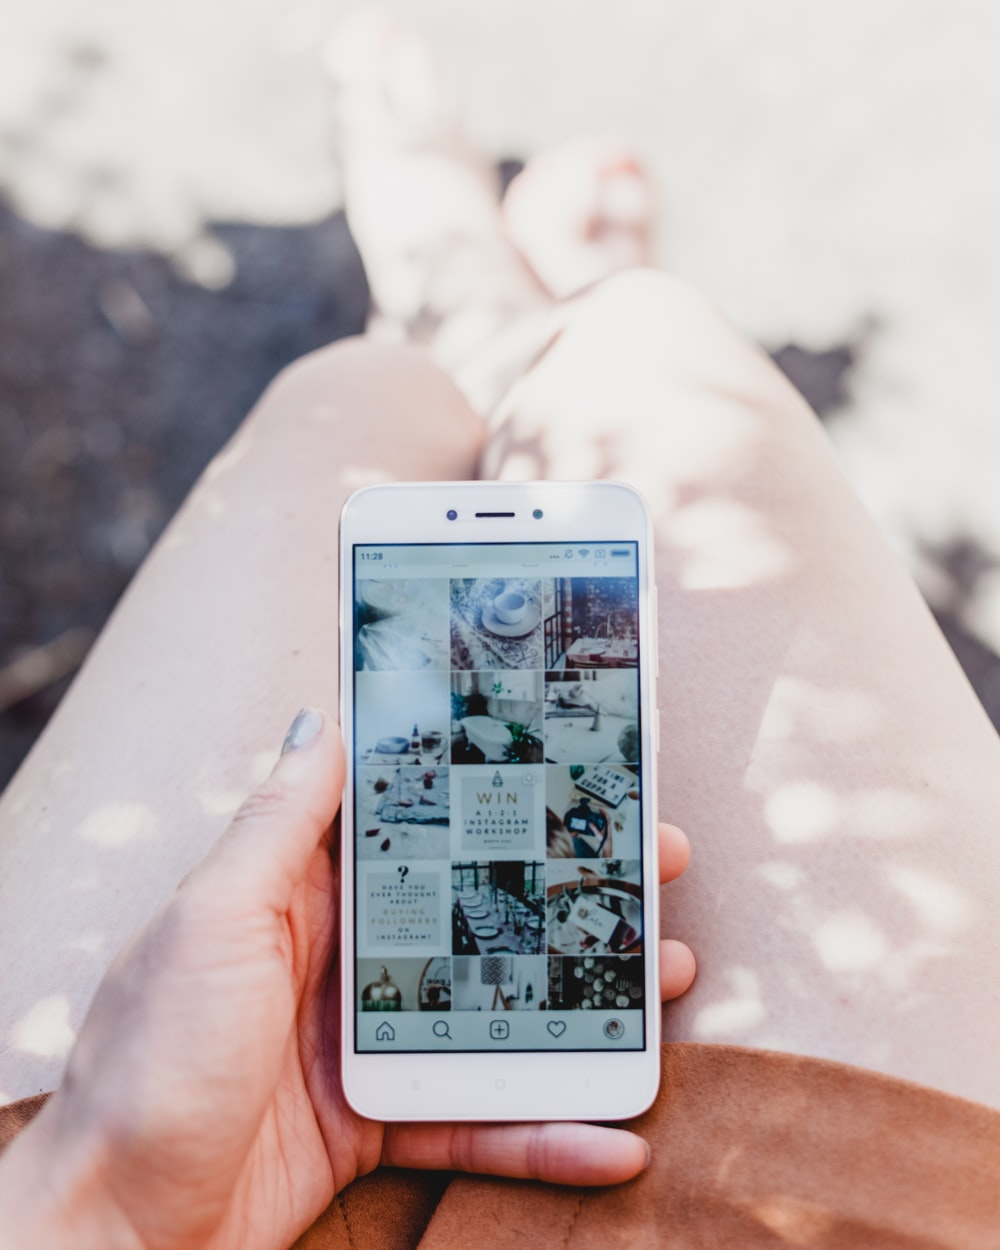 person holding white smartphone showing Instagram feed